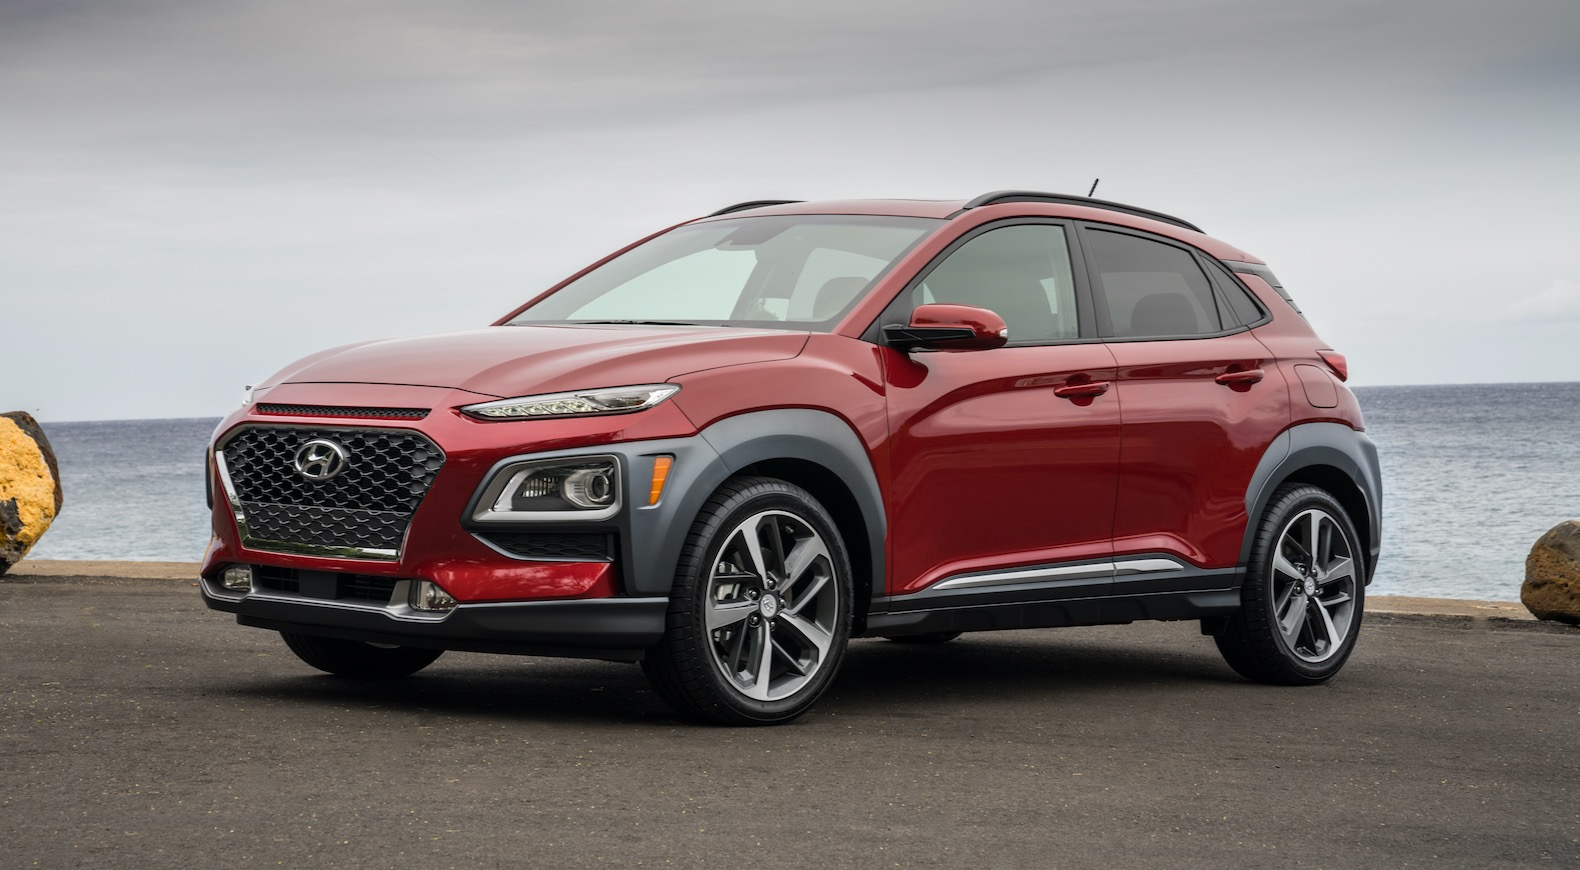 2020 Hyundai Kona Review The Cute Capable Crossover The Torque Report